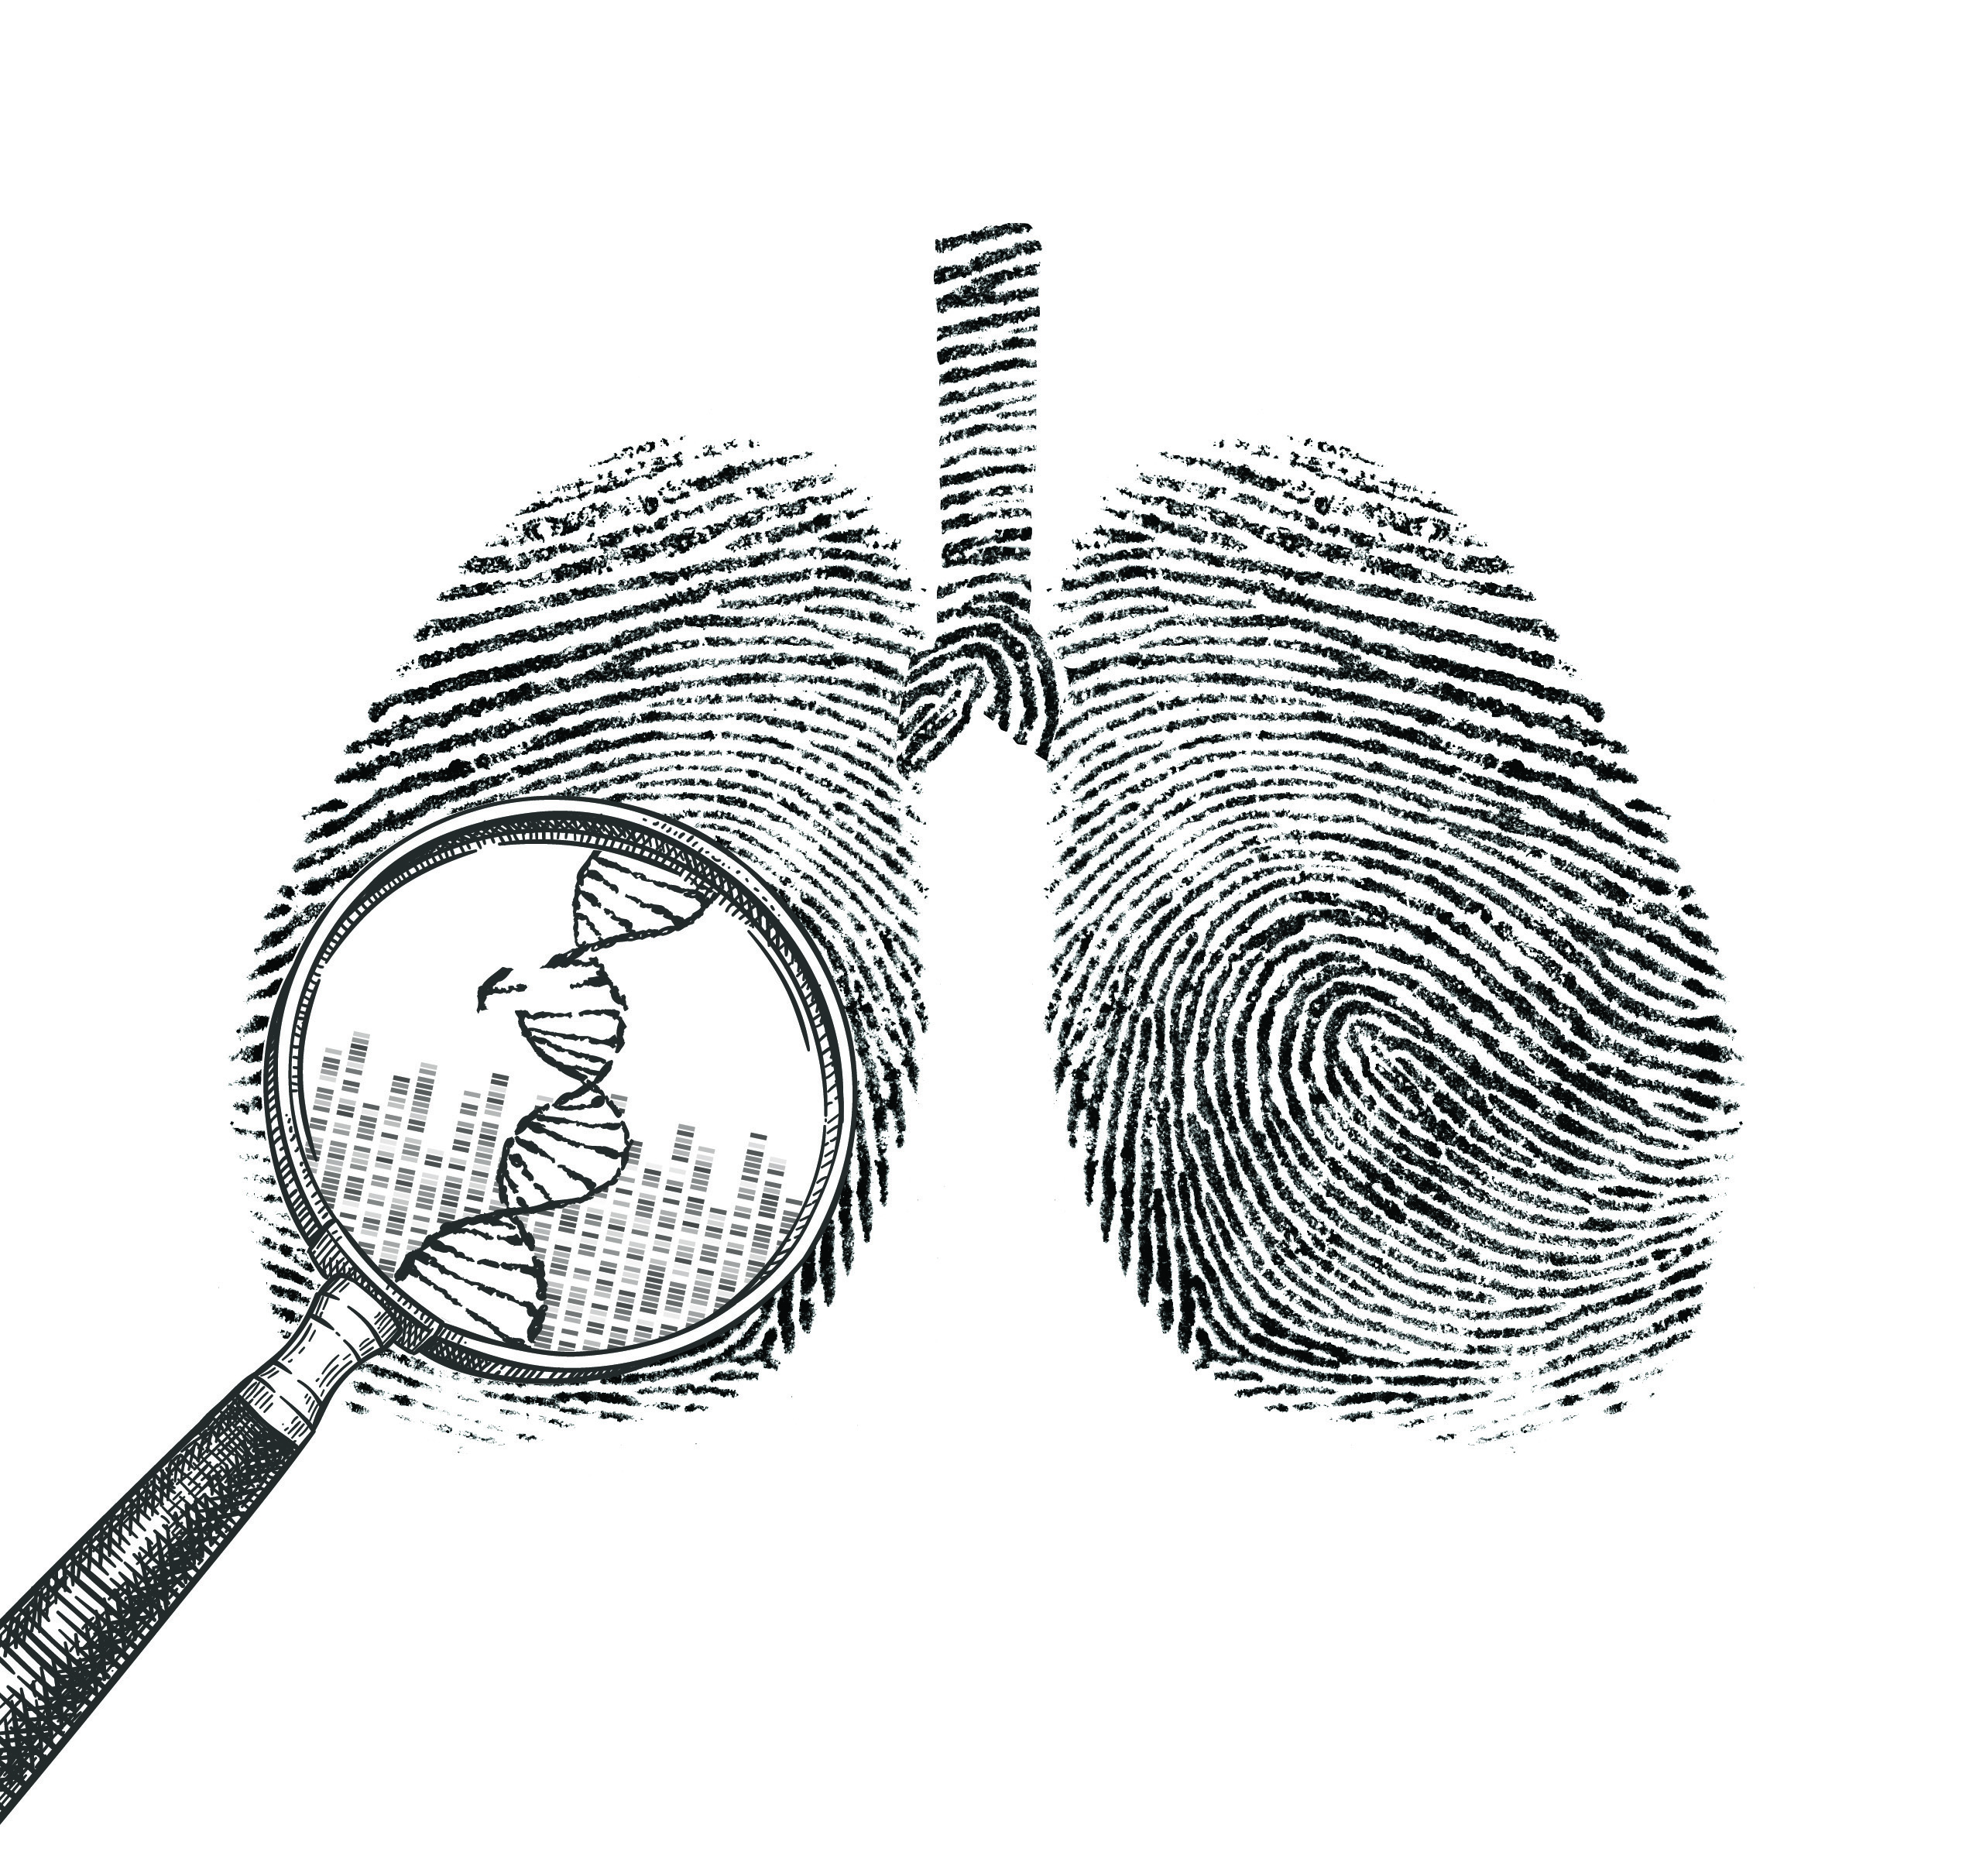 Genomic origins of lung cancer in never smokers